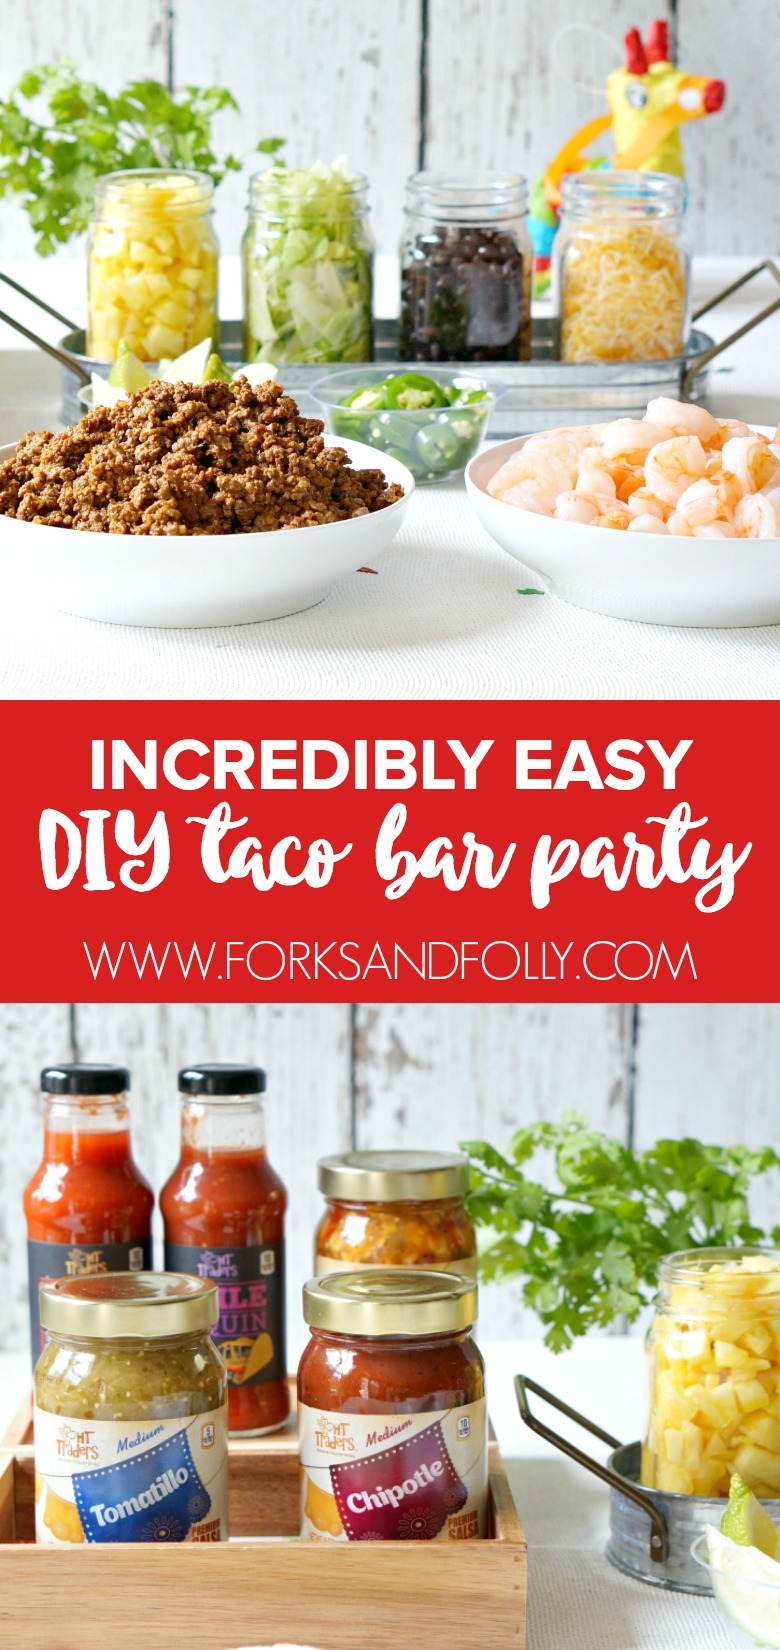 Our Cinco de Mayo Taco Bar Party looks like we spent some serious time preparing.  But did we?  Get the scoop on this super fun DIY Taco Bar for your next summer party.